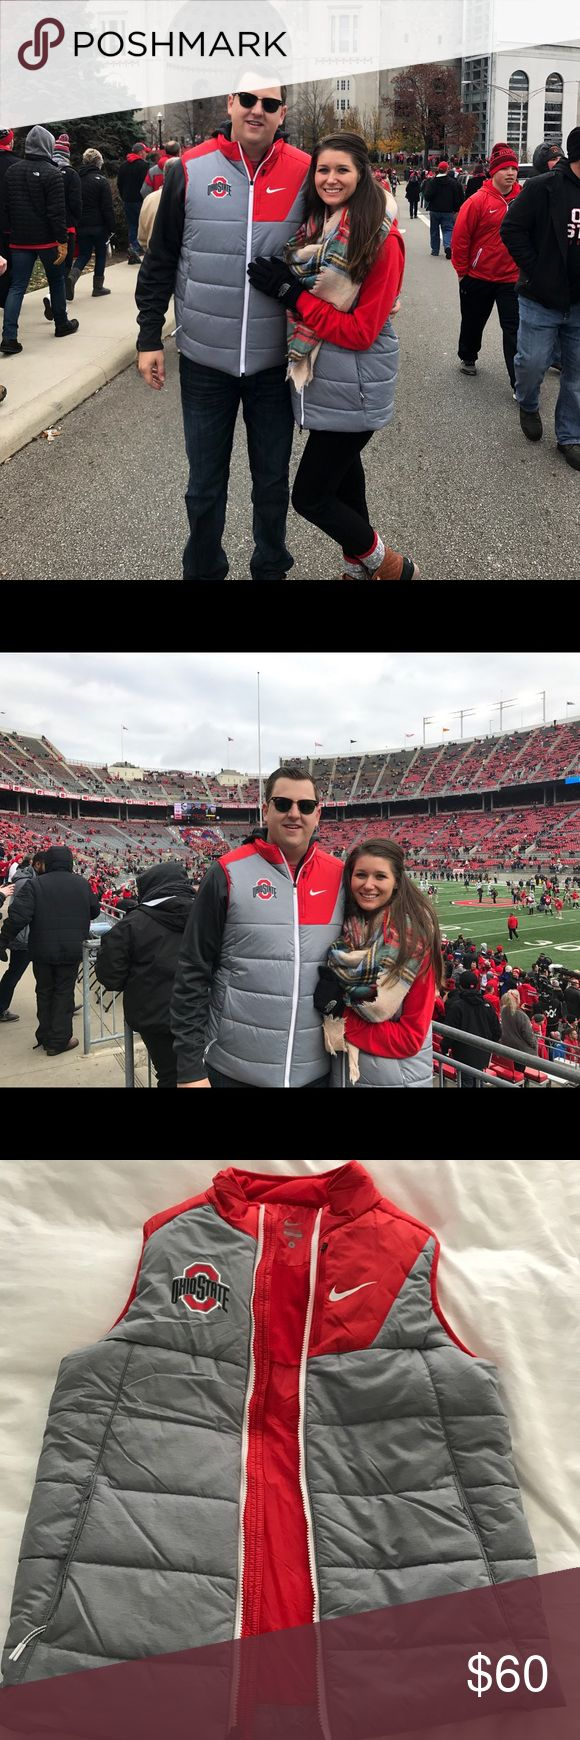 Small (men's/unisex fit) Ohio state Nike vest Worn once for the OSU vs Michigan game. Small (men's/unisex size) but I wore it - just oversized fitting not fitted like a women's size small Nike Jackets & Coats Vests